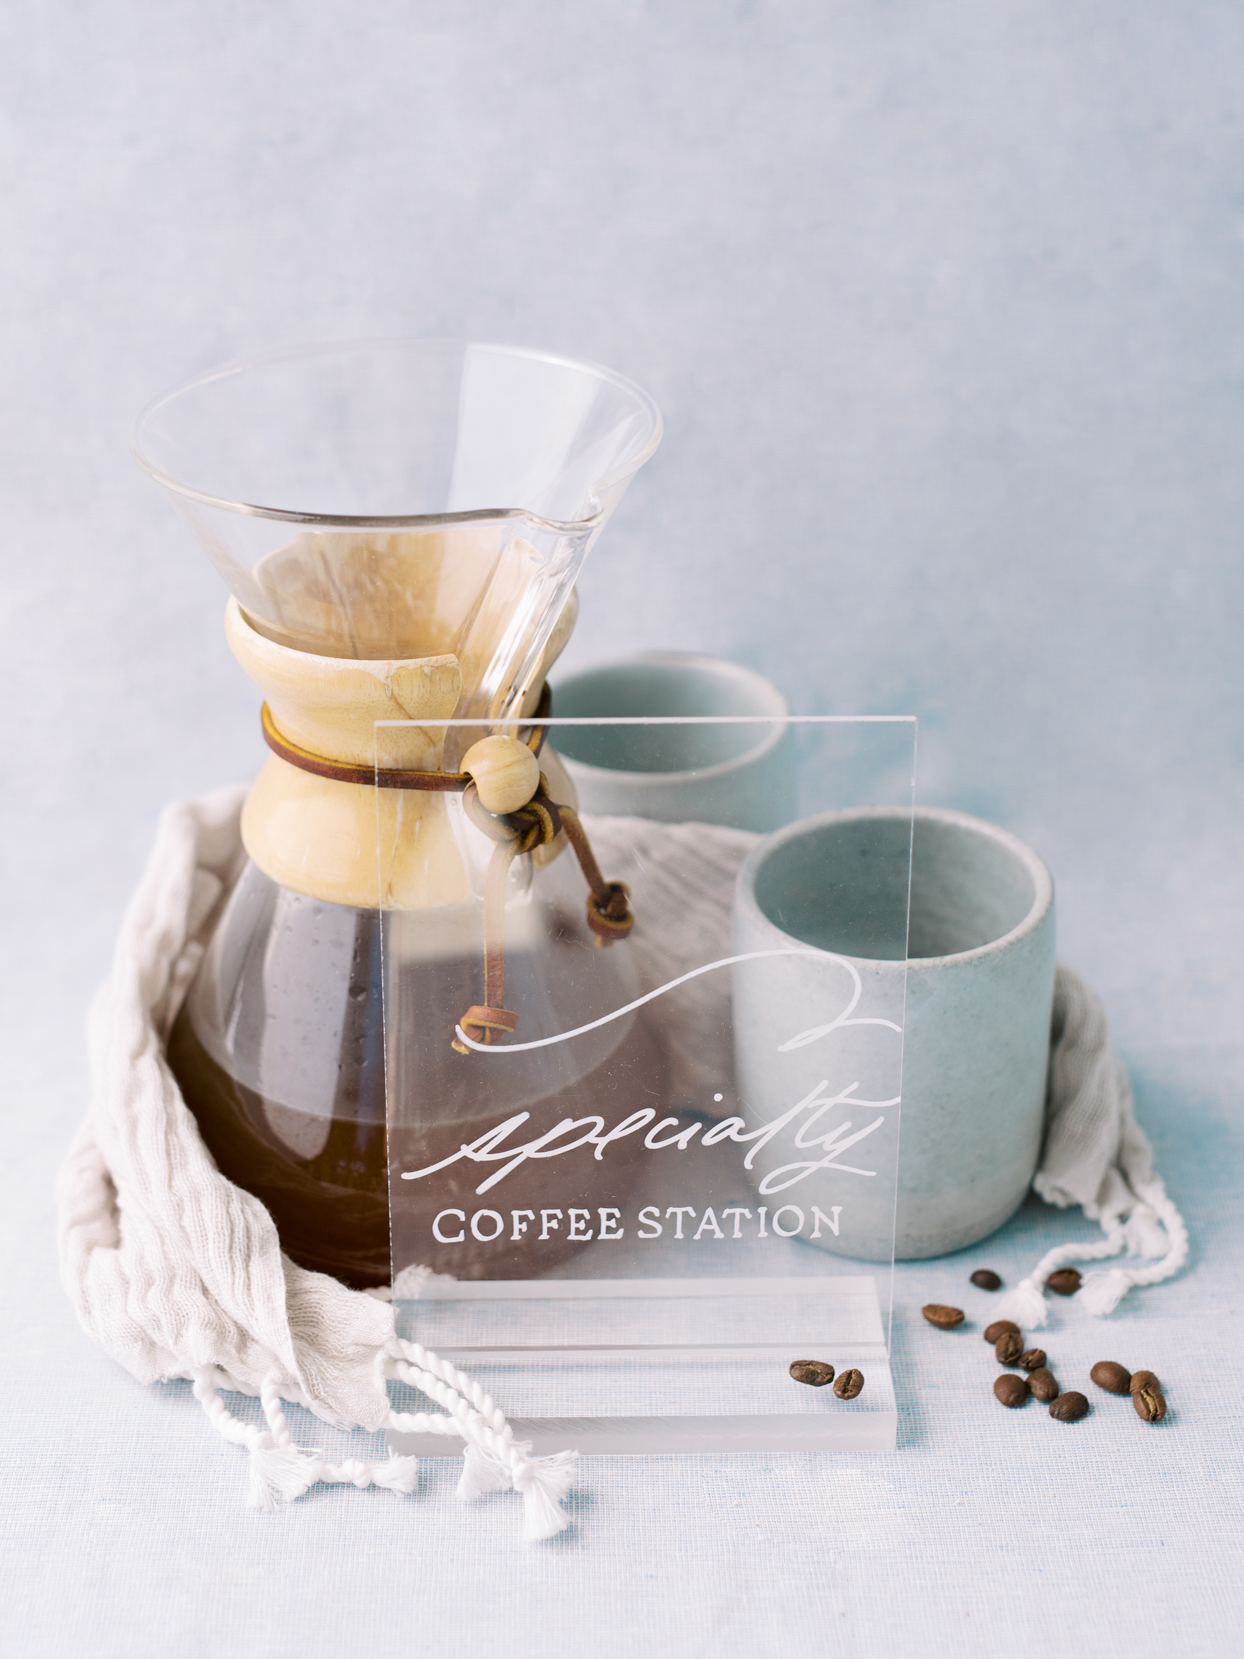 pour over coffee station with cups